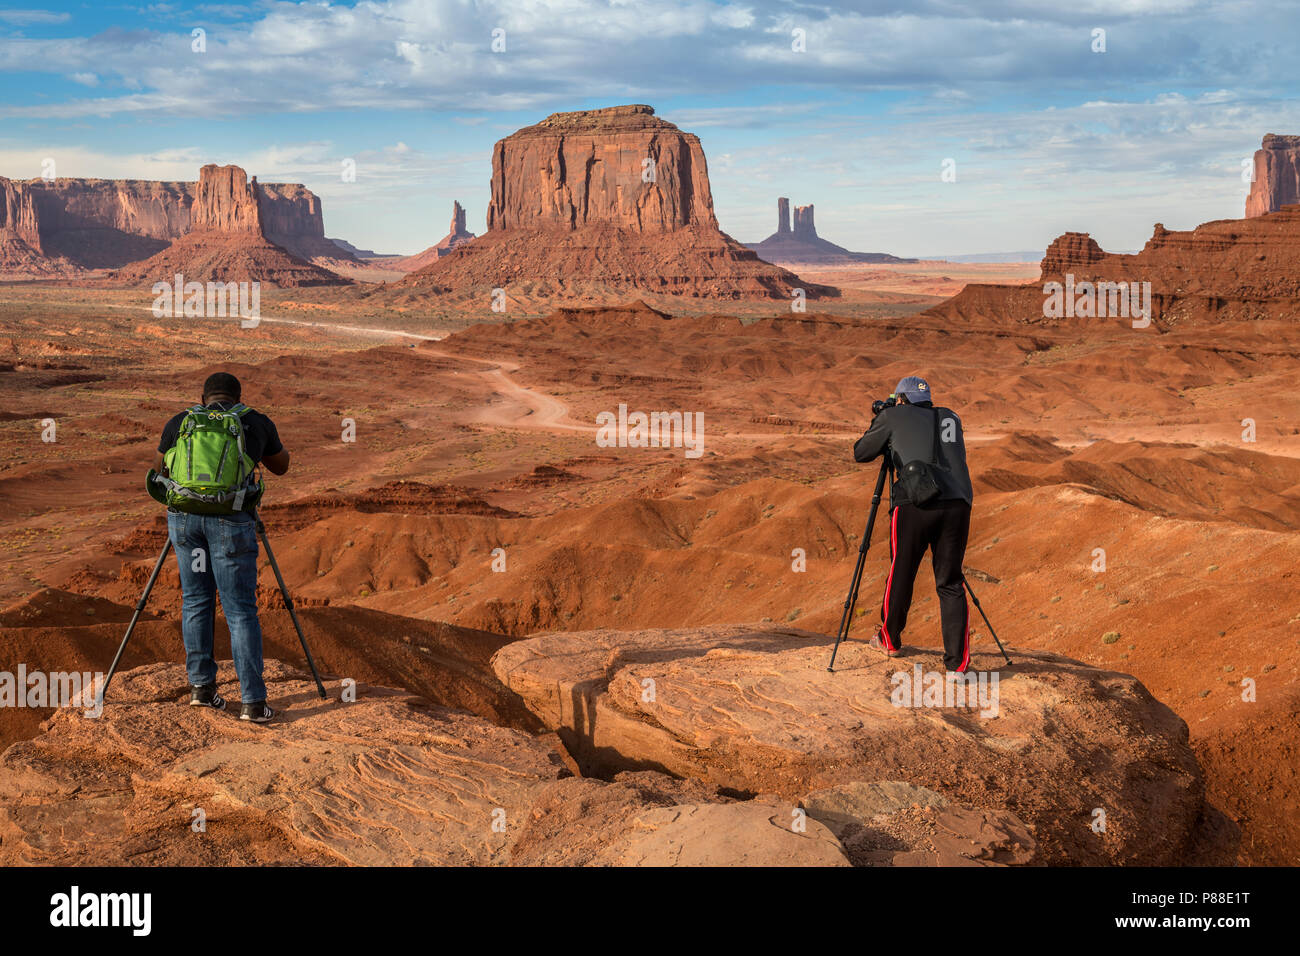 Monument Valley is a region of the Colorado Plateau characterized by a cluster of vast sandstone buttes, the largest reaching 1,000 ft (300 m) above t Stock Photo